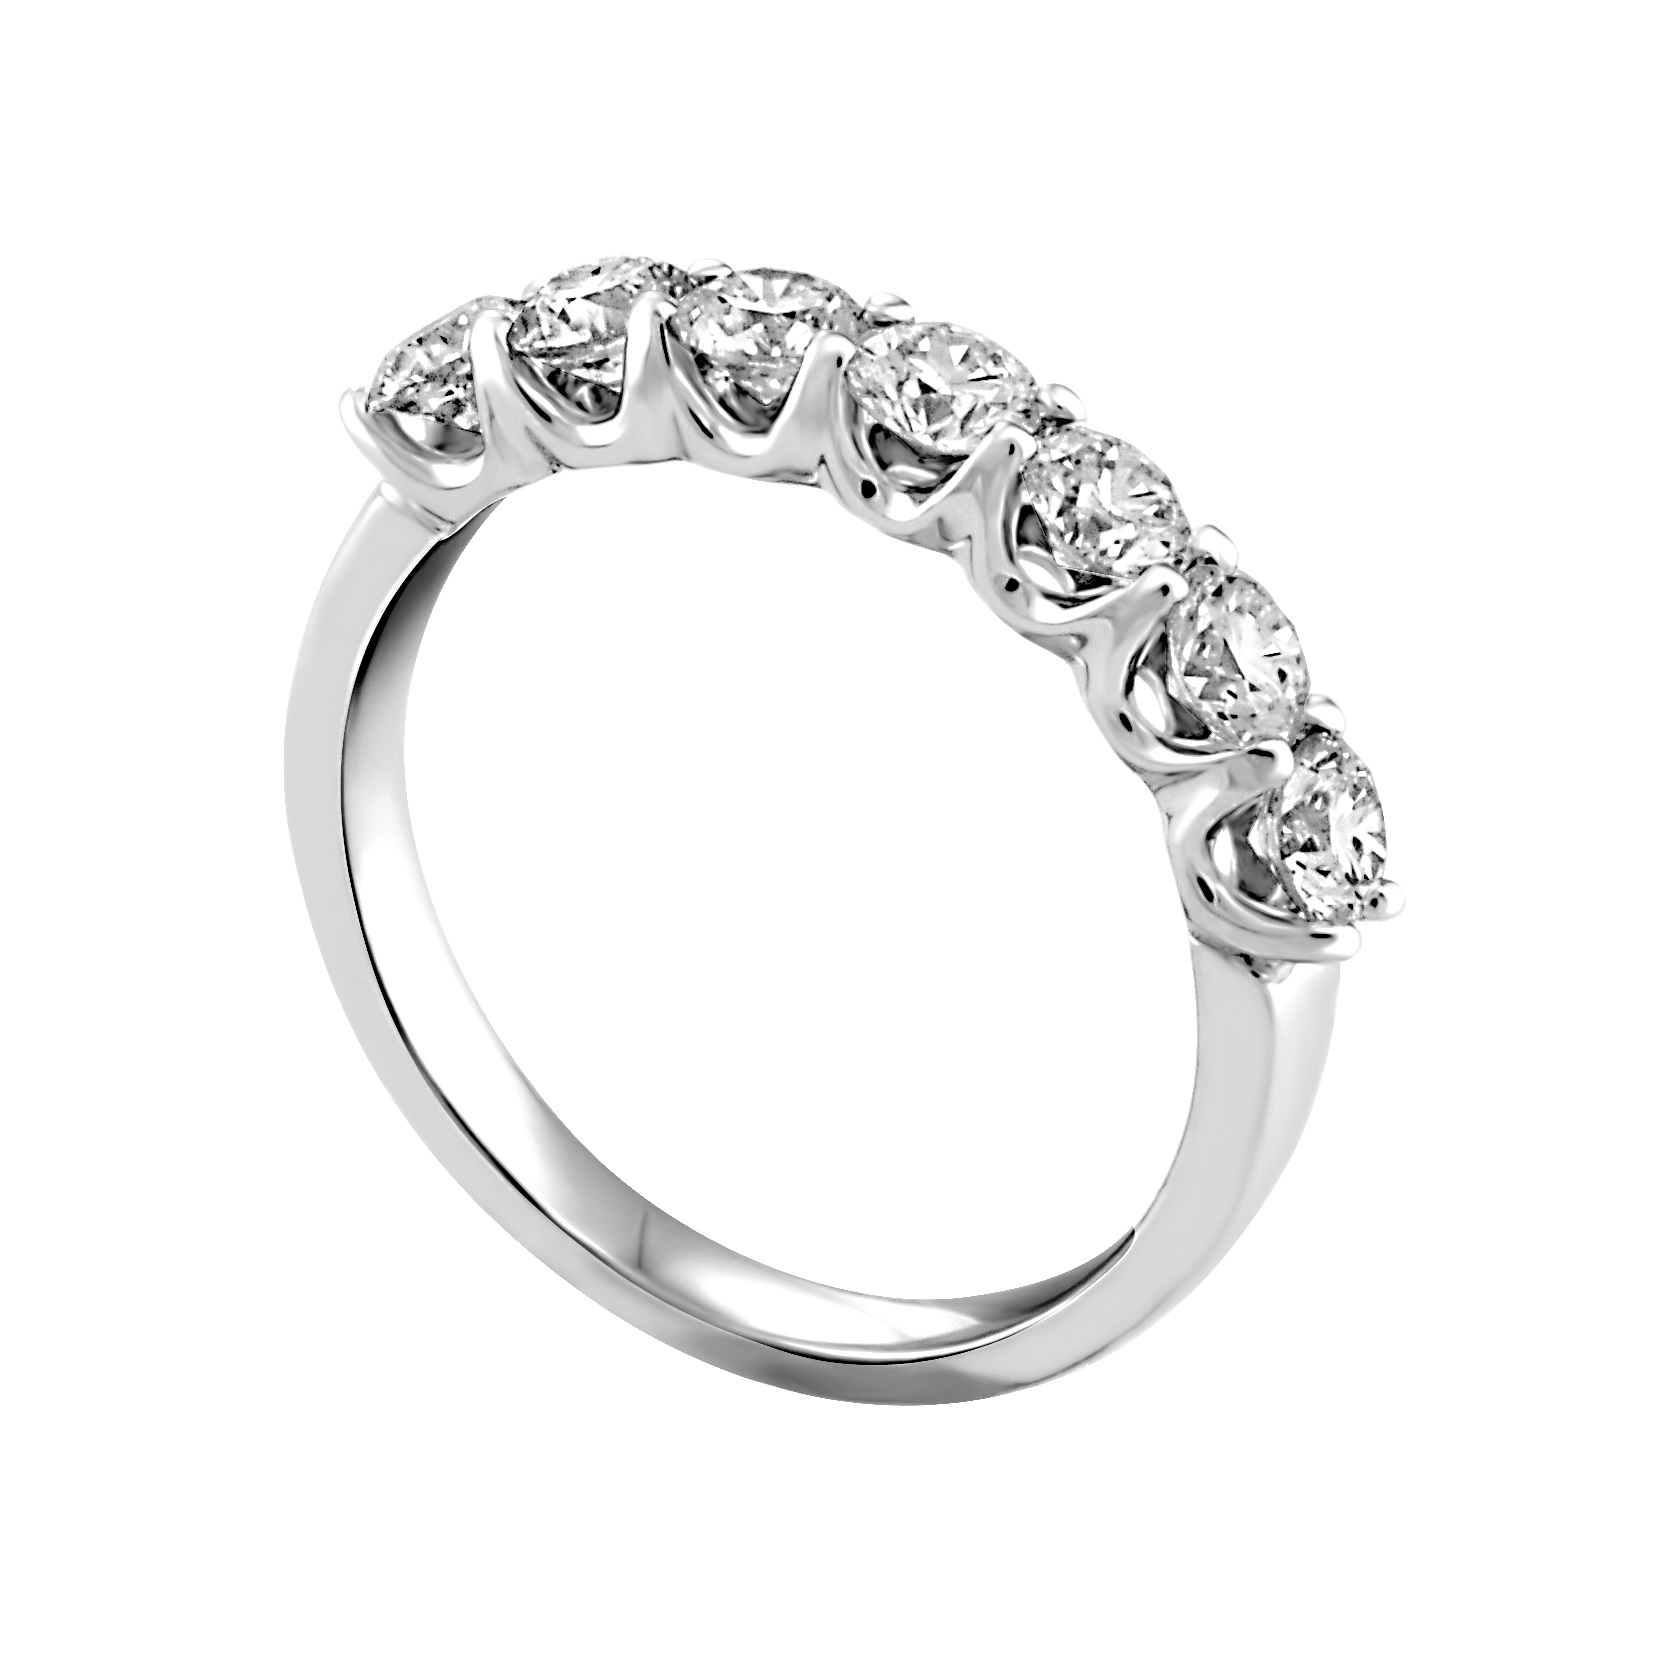 rings ring on wedding slender by range fingerprint french day this browse morgan